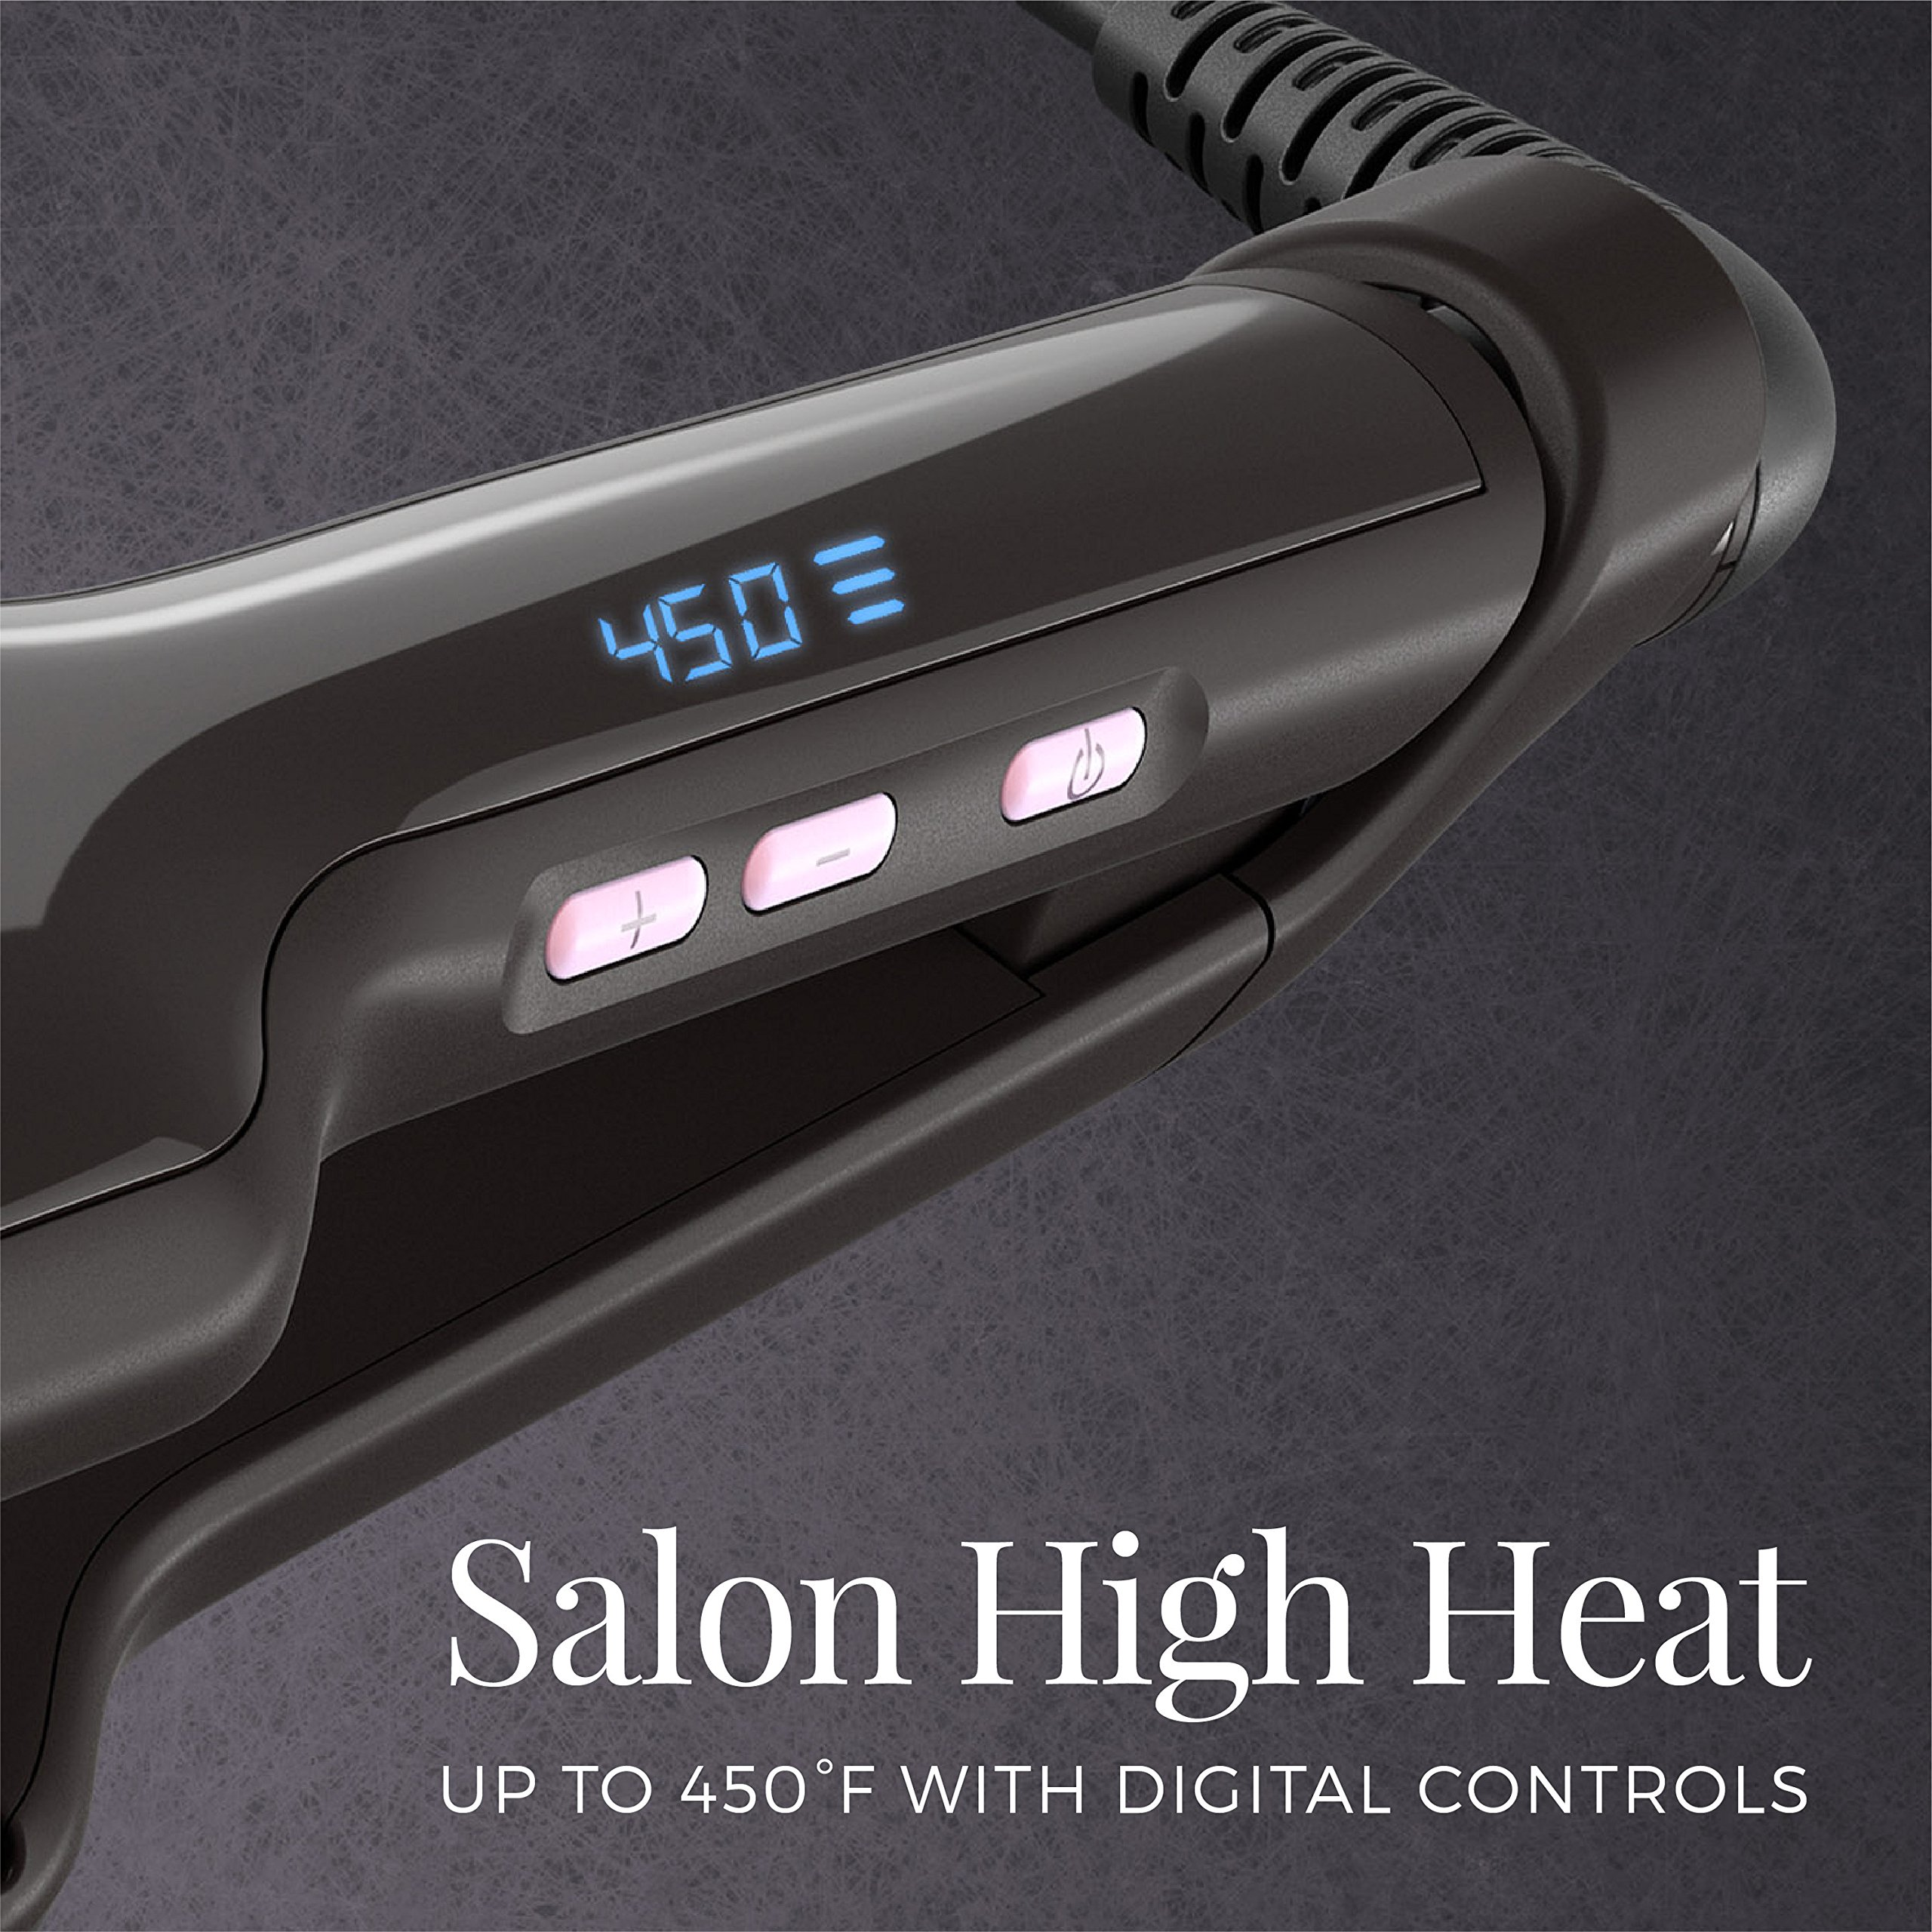 Remington Pro 2'' Flat Iron with Pearl Ceramic Technology and Digital Controls, Black, S9520 by Remington (Image #2)